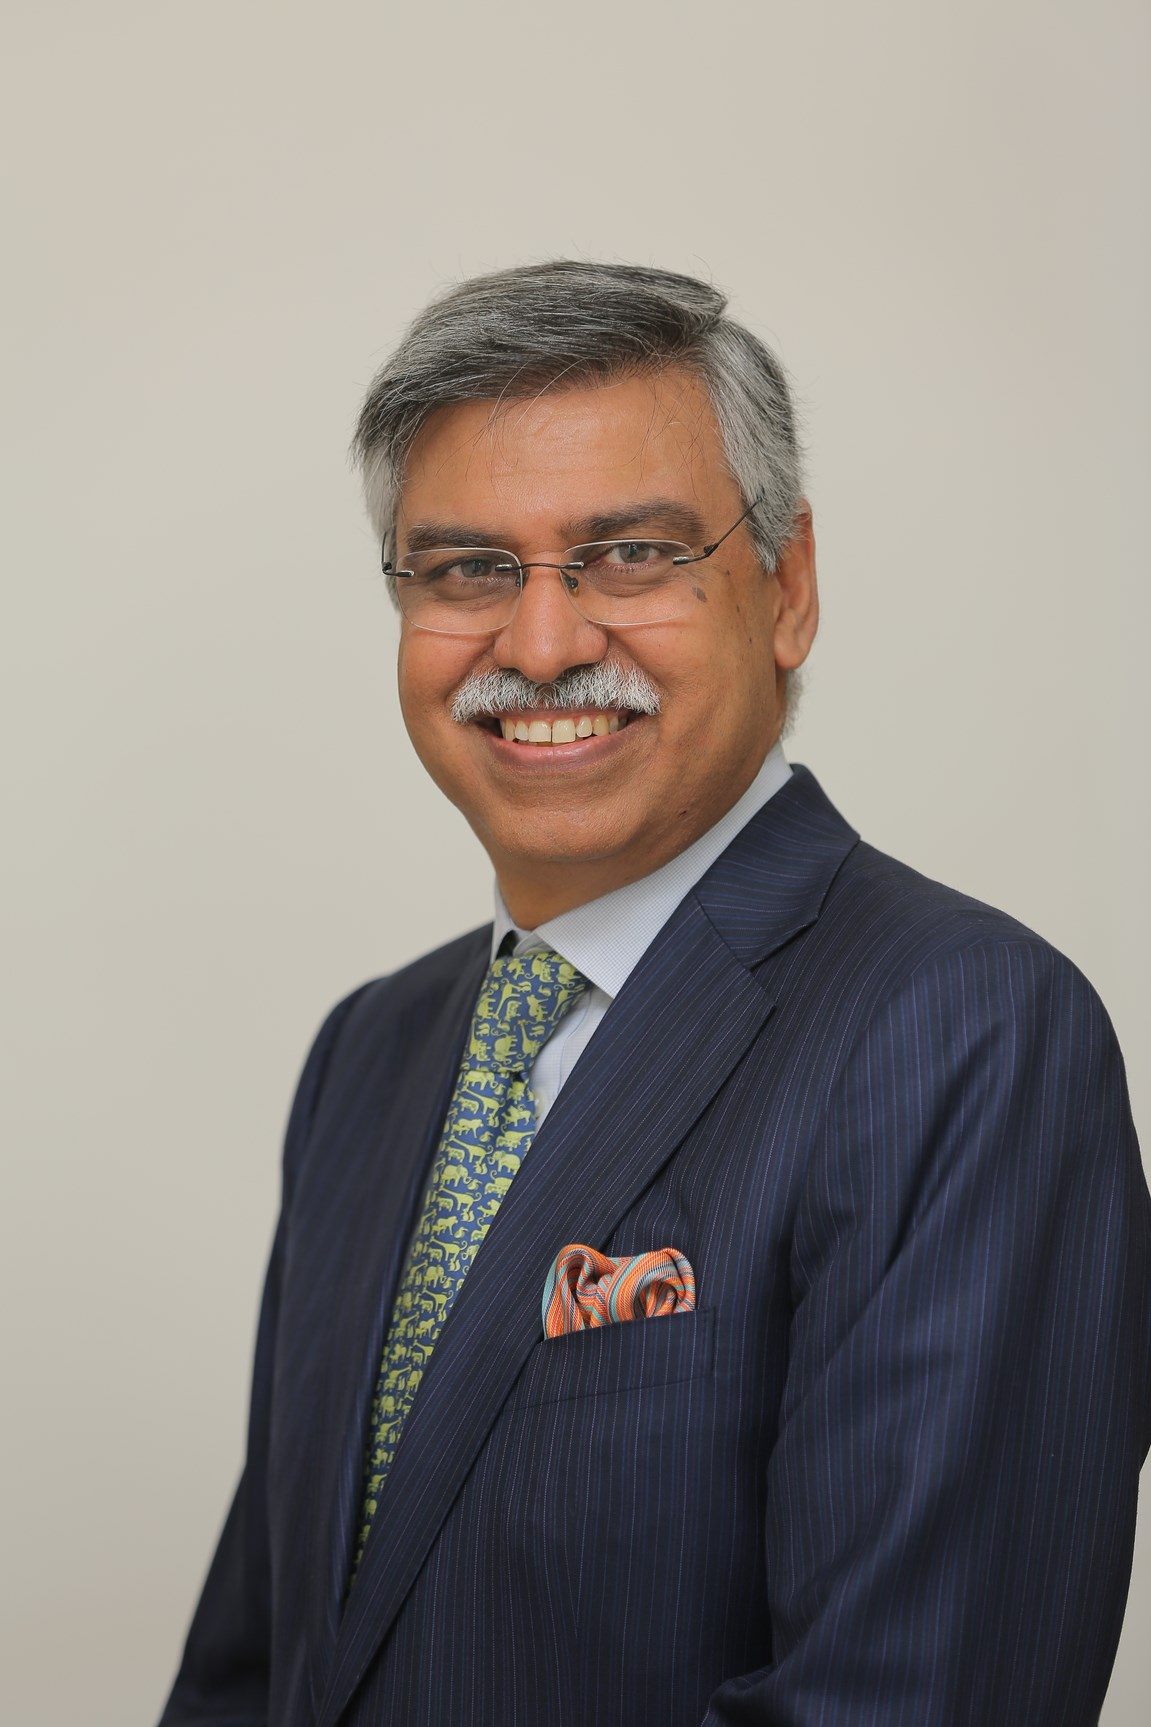 Budget 2018 to focus on economy as well as people's issues: Sunil Kant Munjal